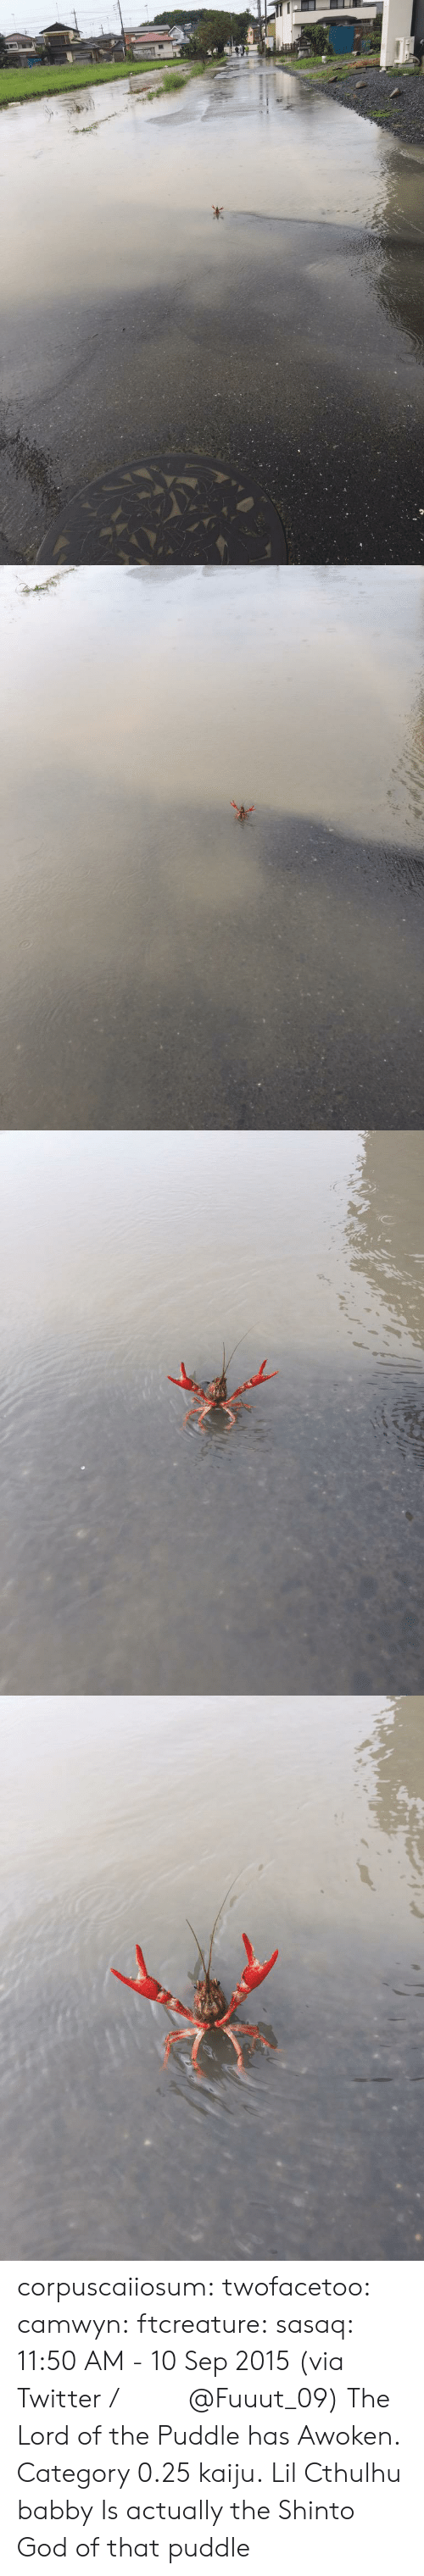 God, Tumblr, and Twitter: corpuscaiiosum: twofacetoo:   camwyn:  ftcreature:  sasaq:  11:50 AM - 10 Sep 2015 (via Twitter / ふ み な @Fuuut_09)   The Lord of the Puddle has Awoken.  Category 0.25 kaiju.  Lil Cthulhu babby   Is actually the Shinto God of that puddle